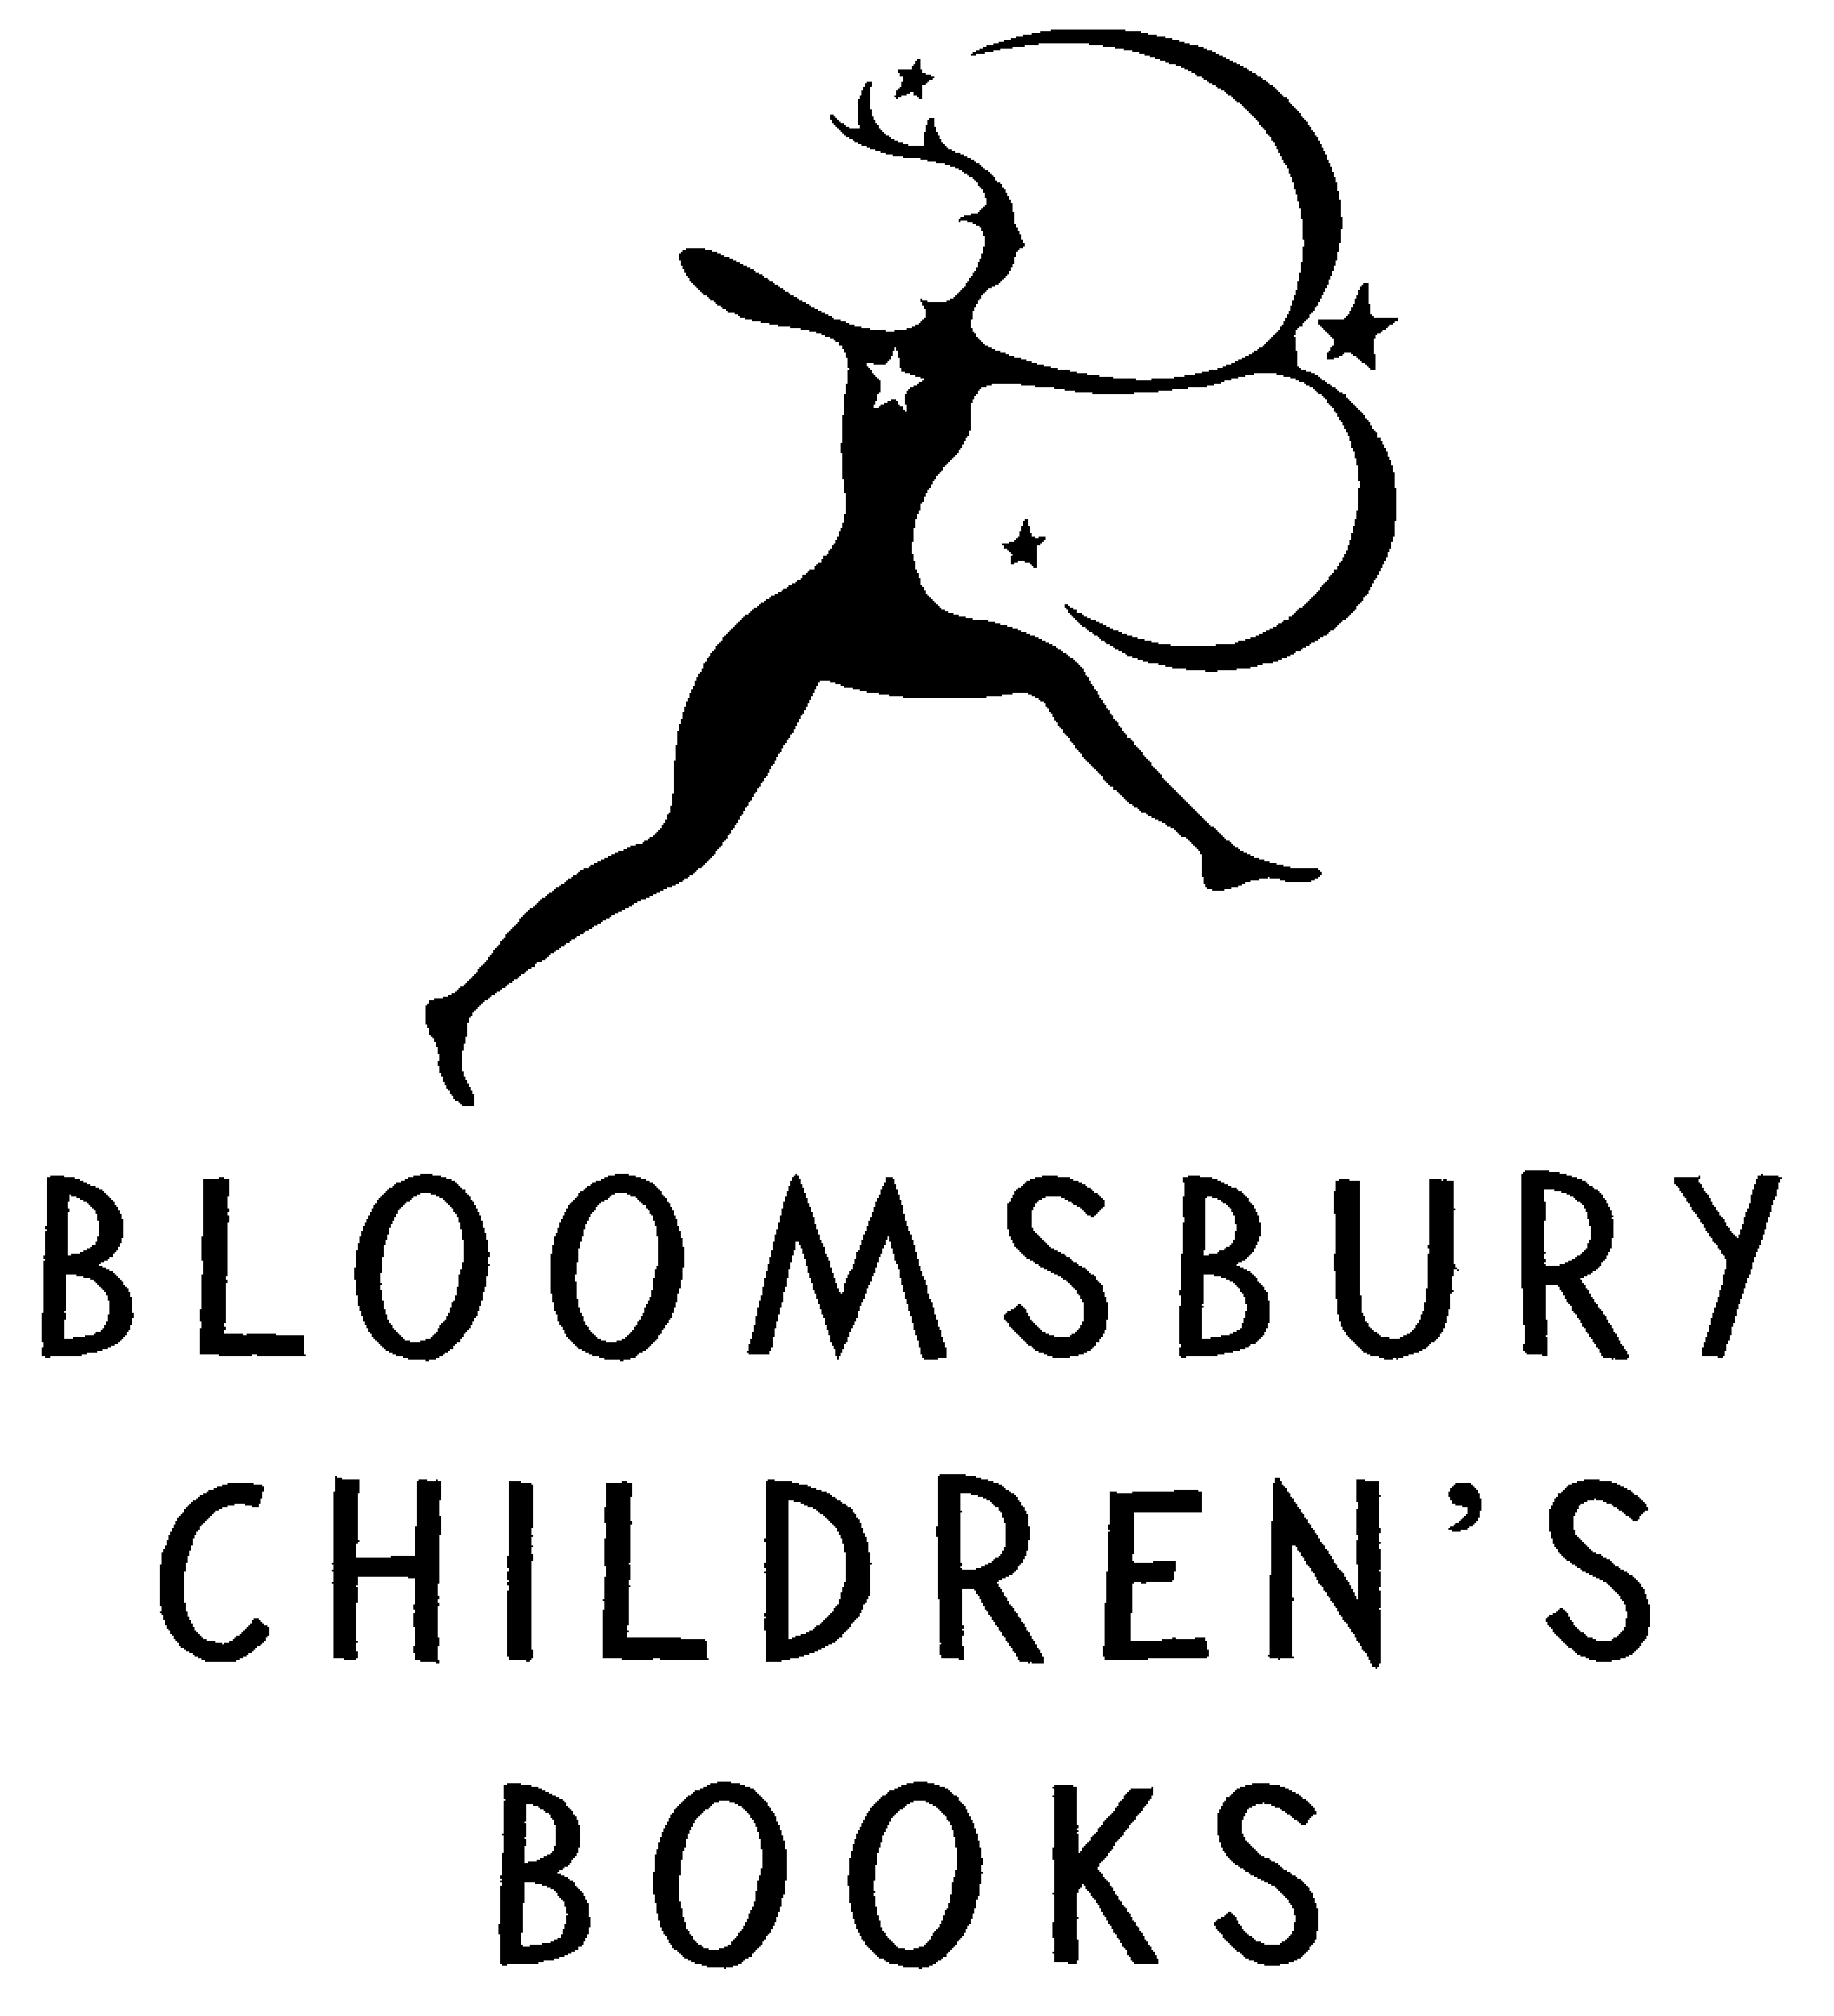 Bloomsbury Children's Books